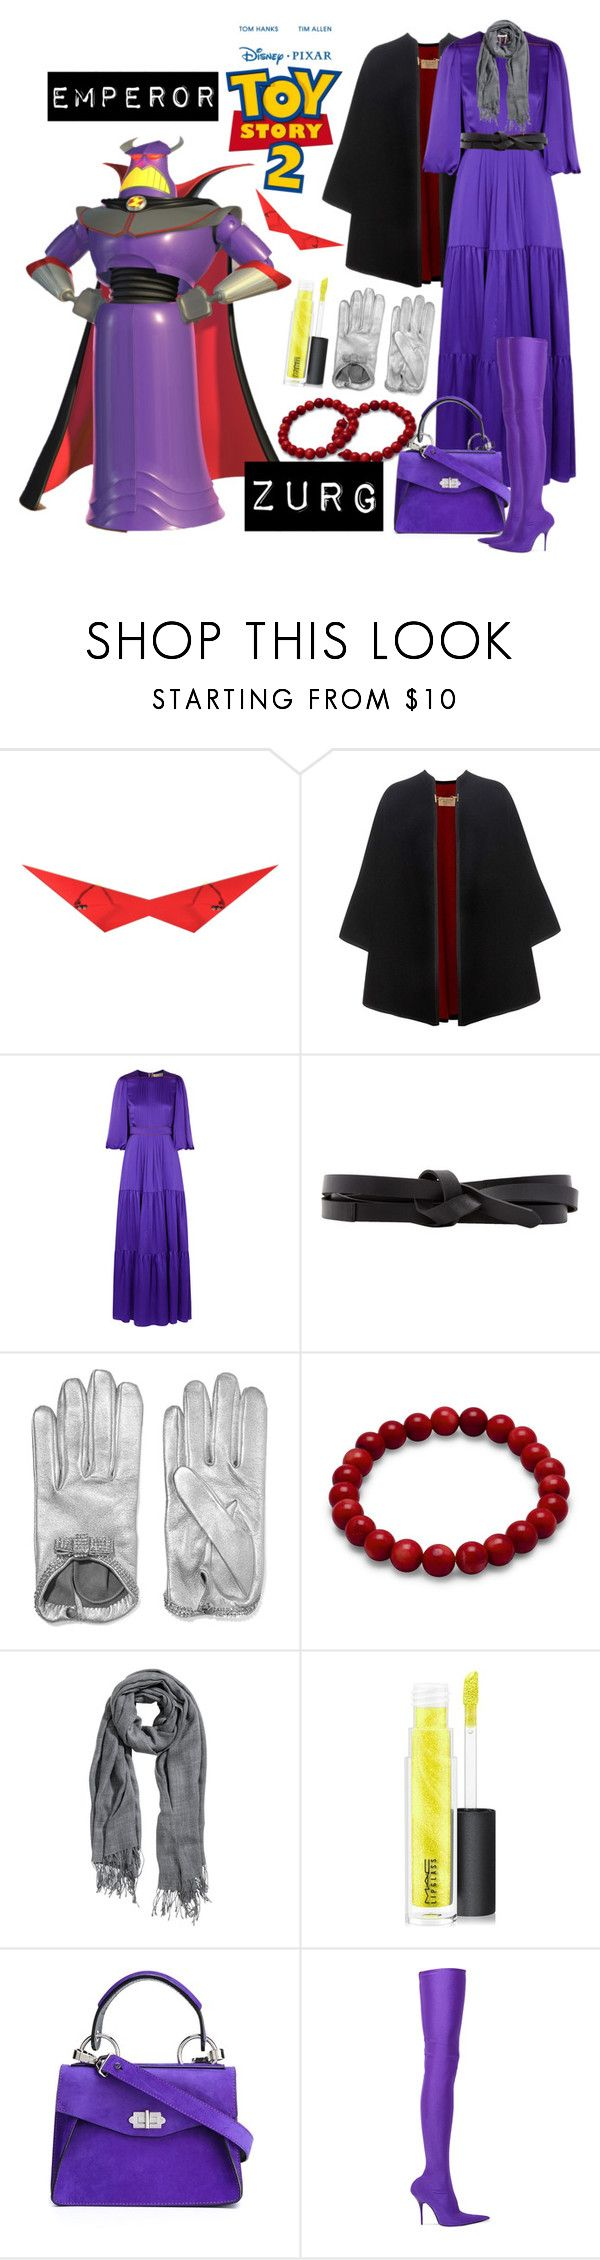 """Emperor Zurg"" by allyssister ❤ liked on Polyvore featuring Burberry, Roksanda, Isabel Marant, Causse, H&M, MAC Cosmetics, Proenza Schouler and Balenciaga"